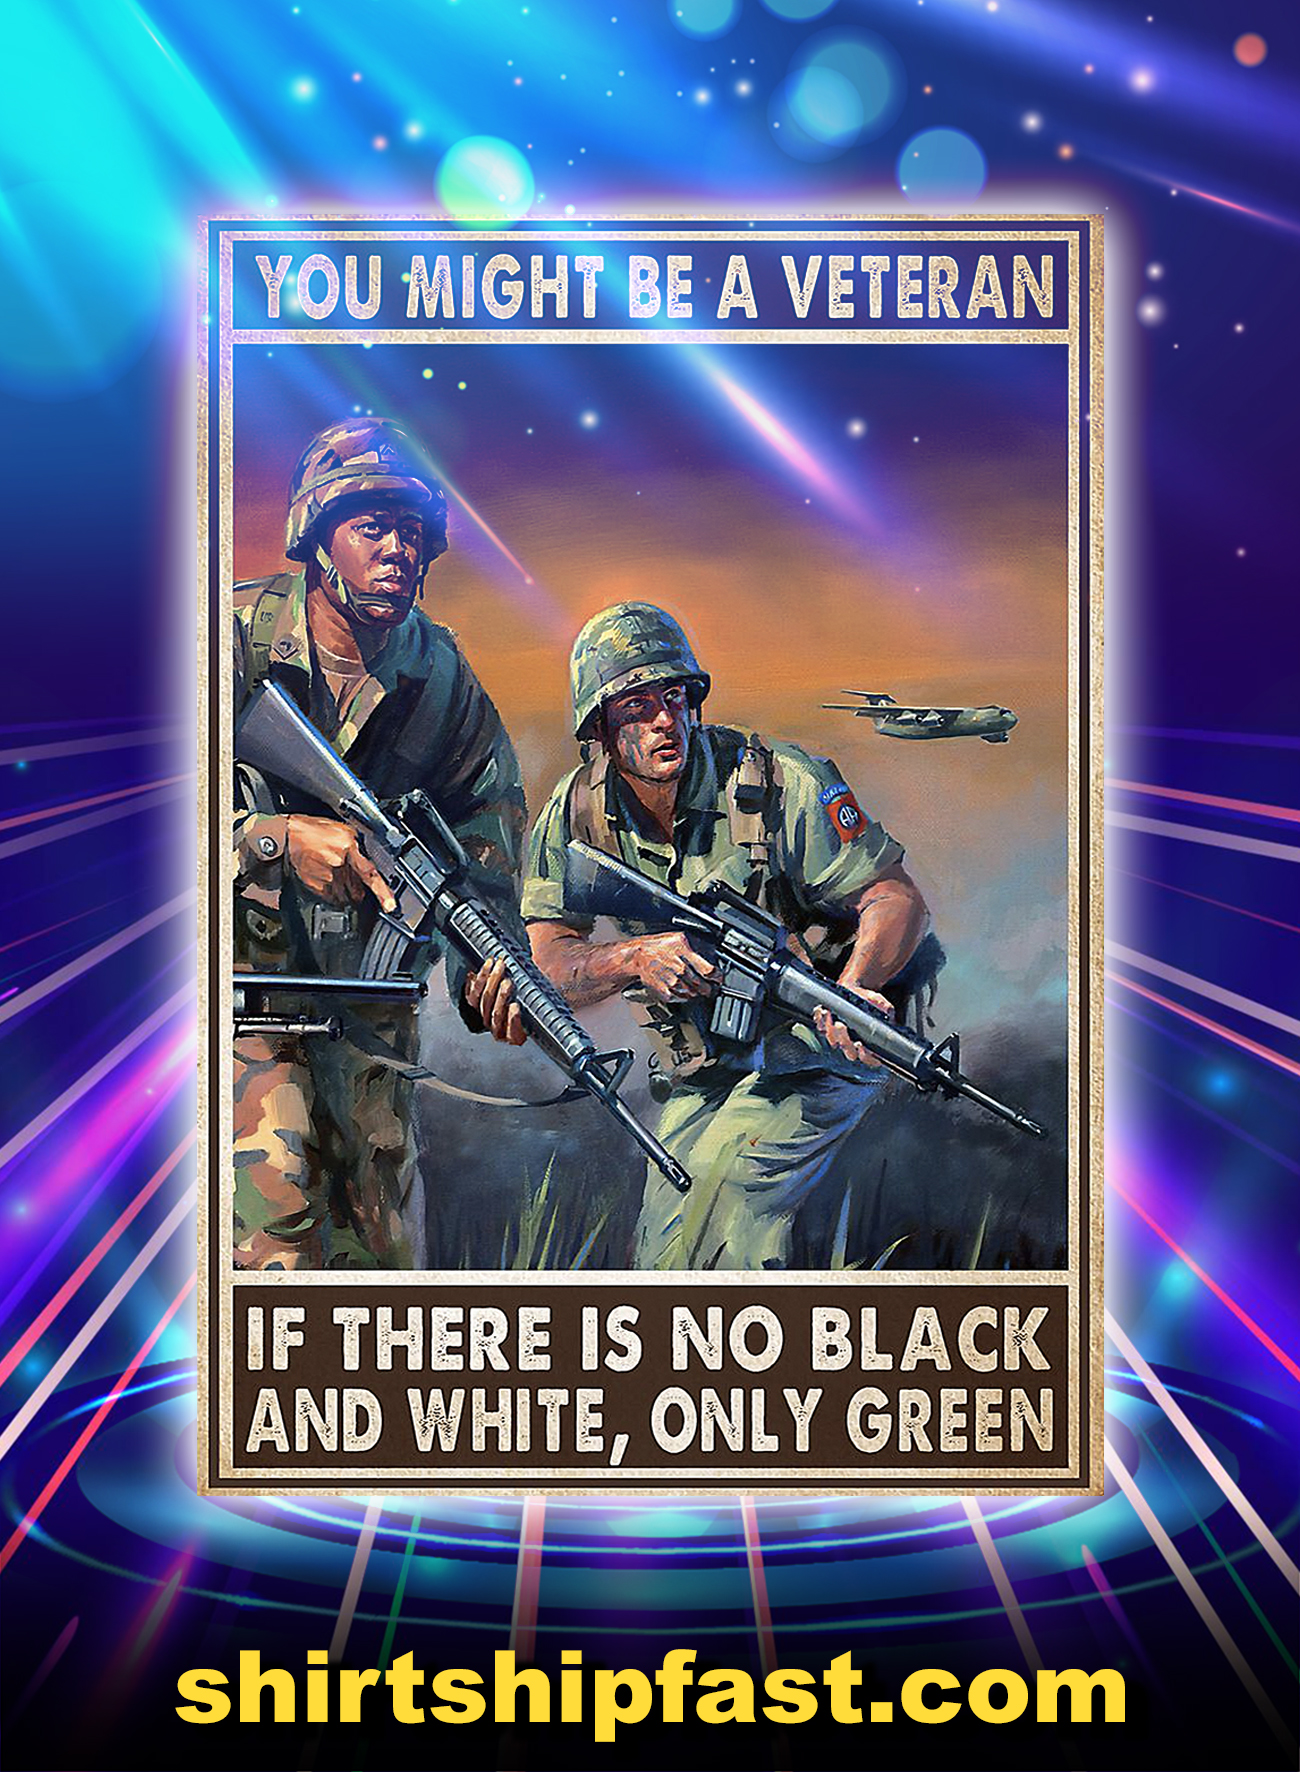 You might be a veteran if there is no black and white only green poster - A4